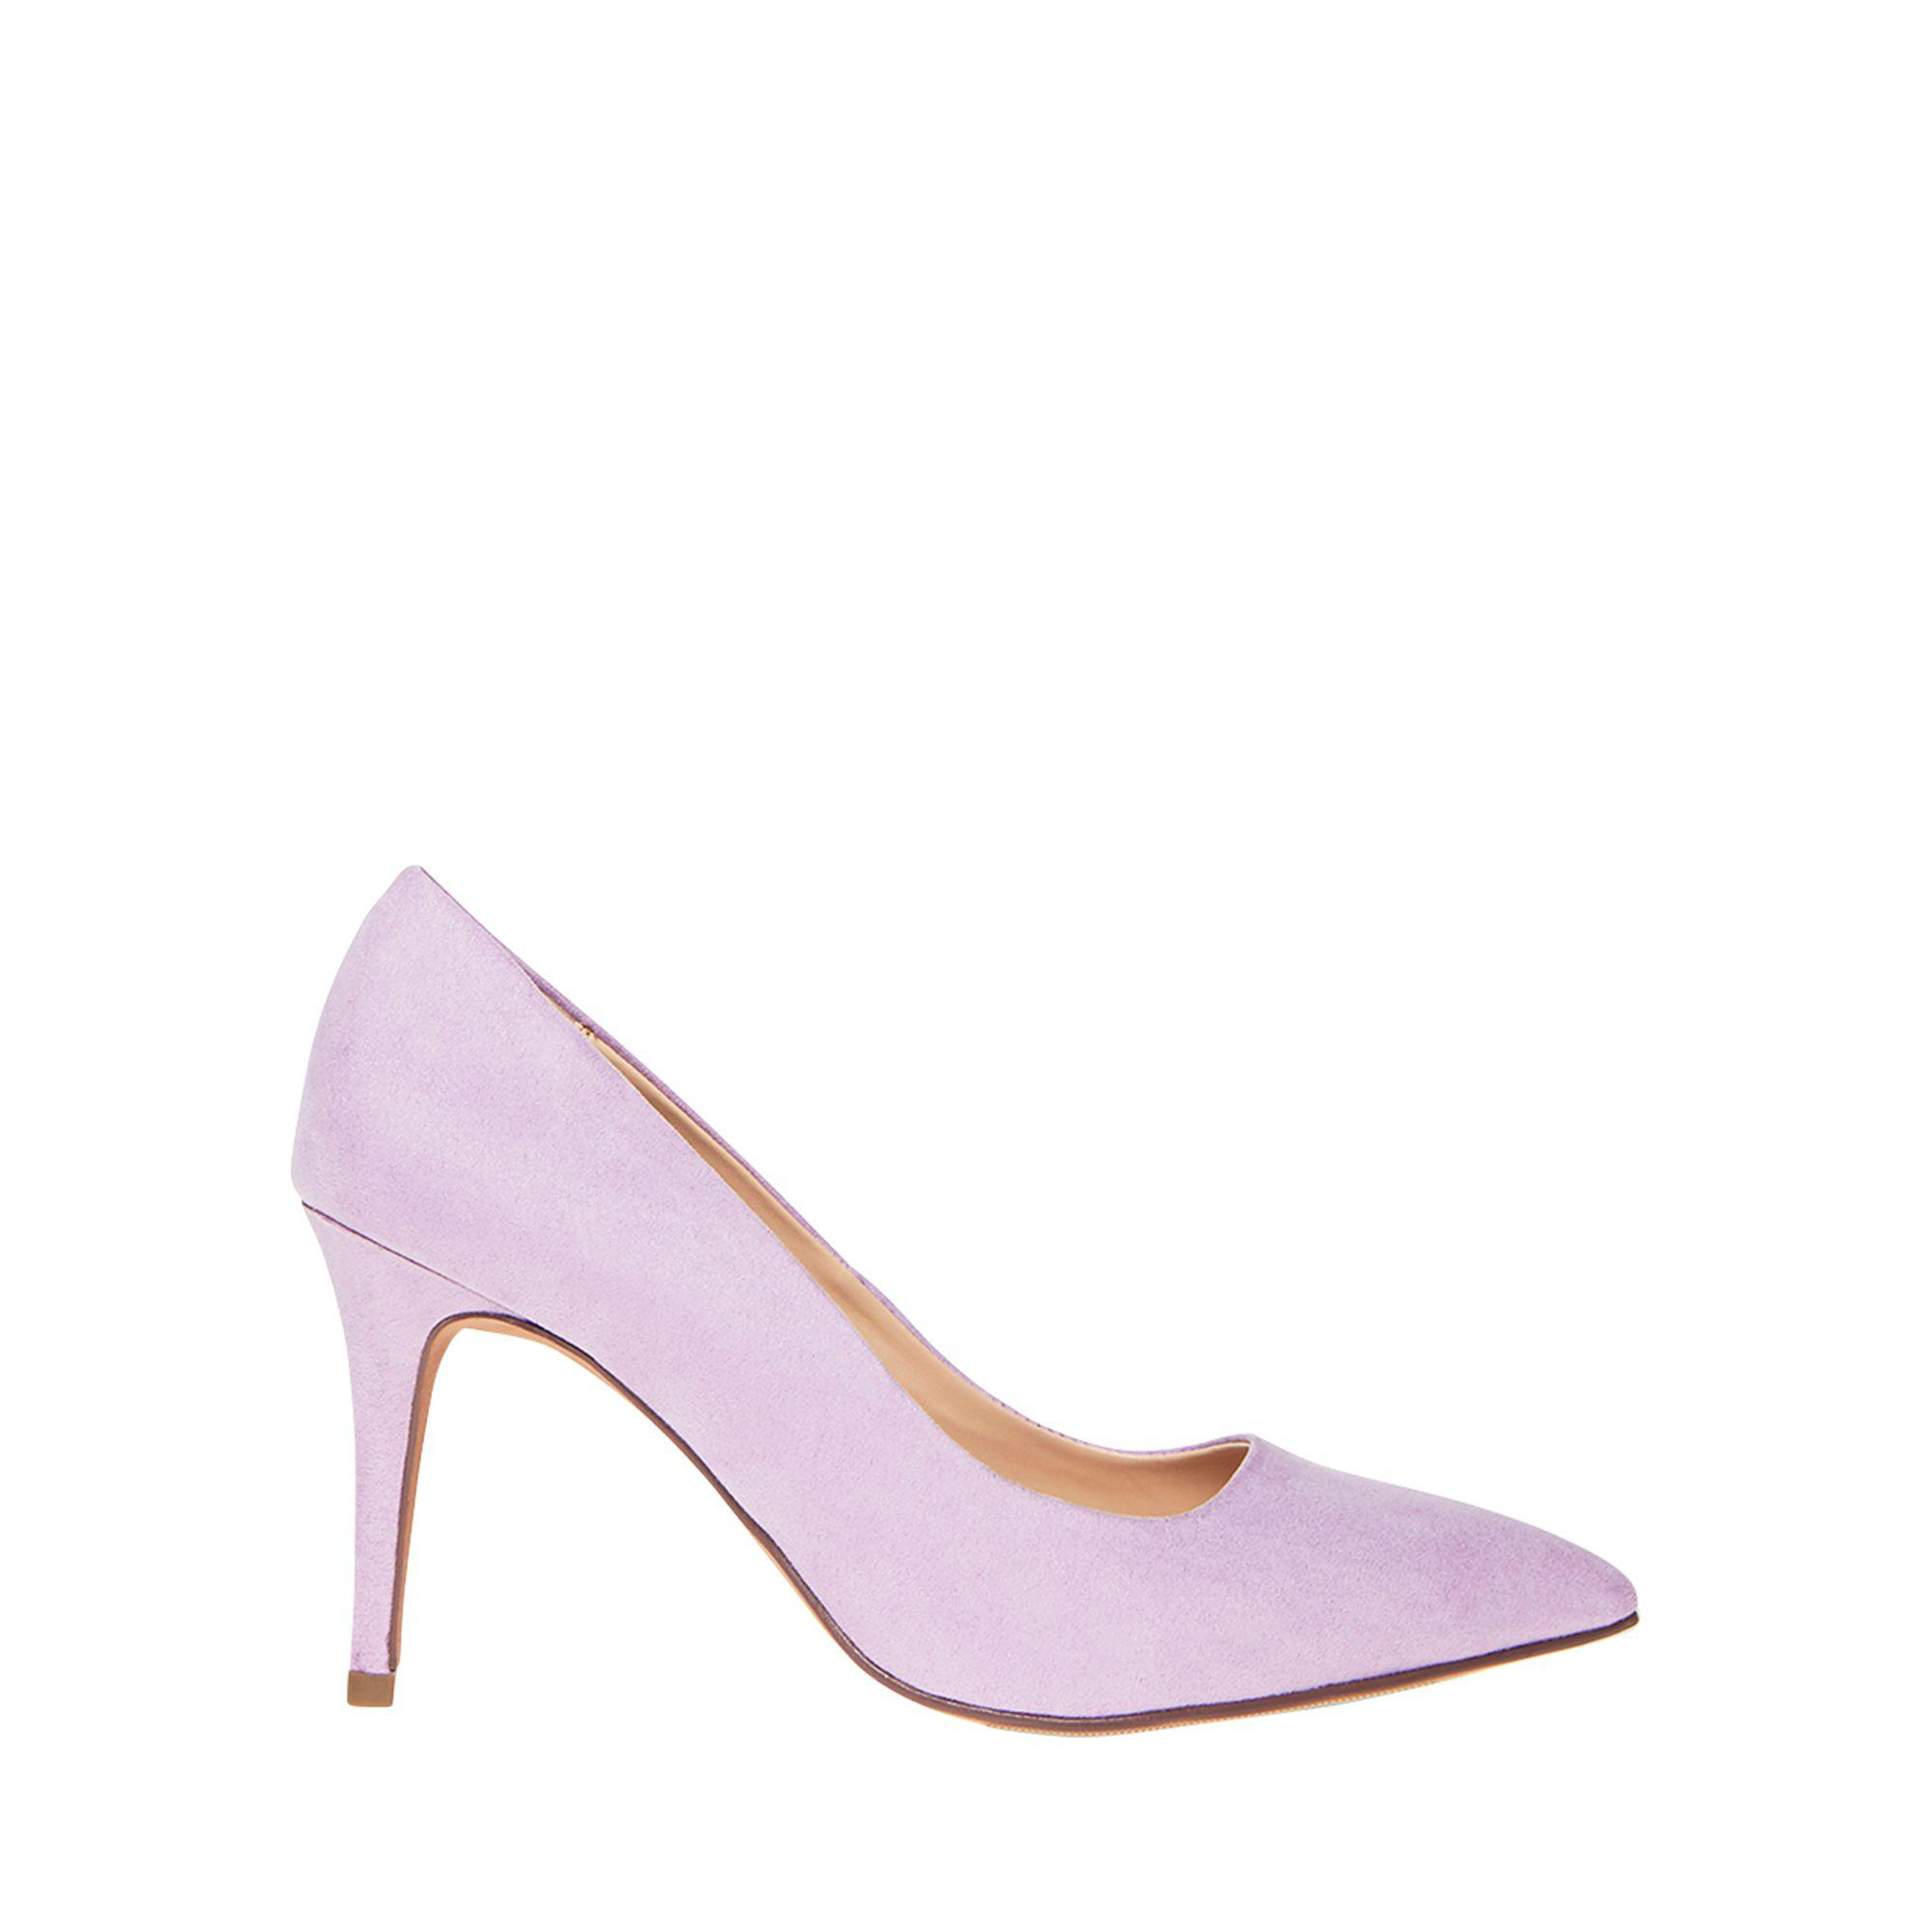 be9cecc0864 Dorothy Perkins Wide Fit Lilac Microfibre Electra Court Shoes in ...